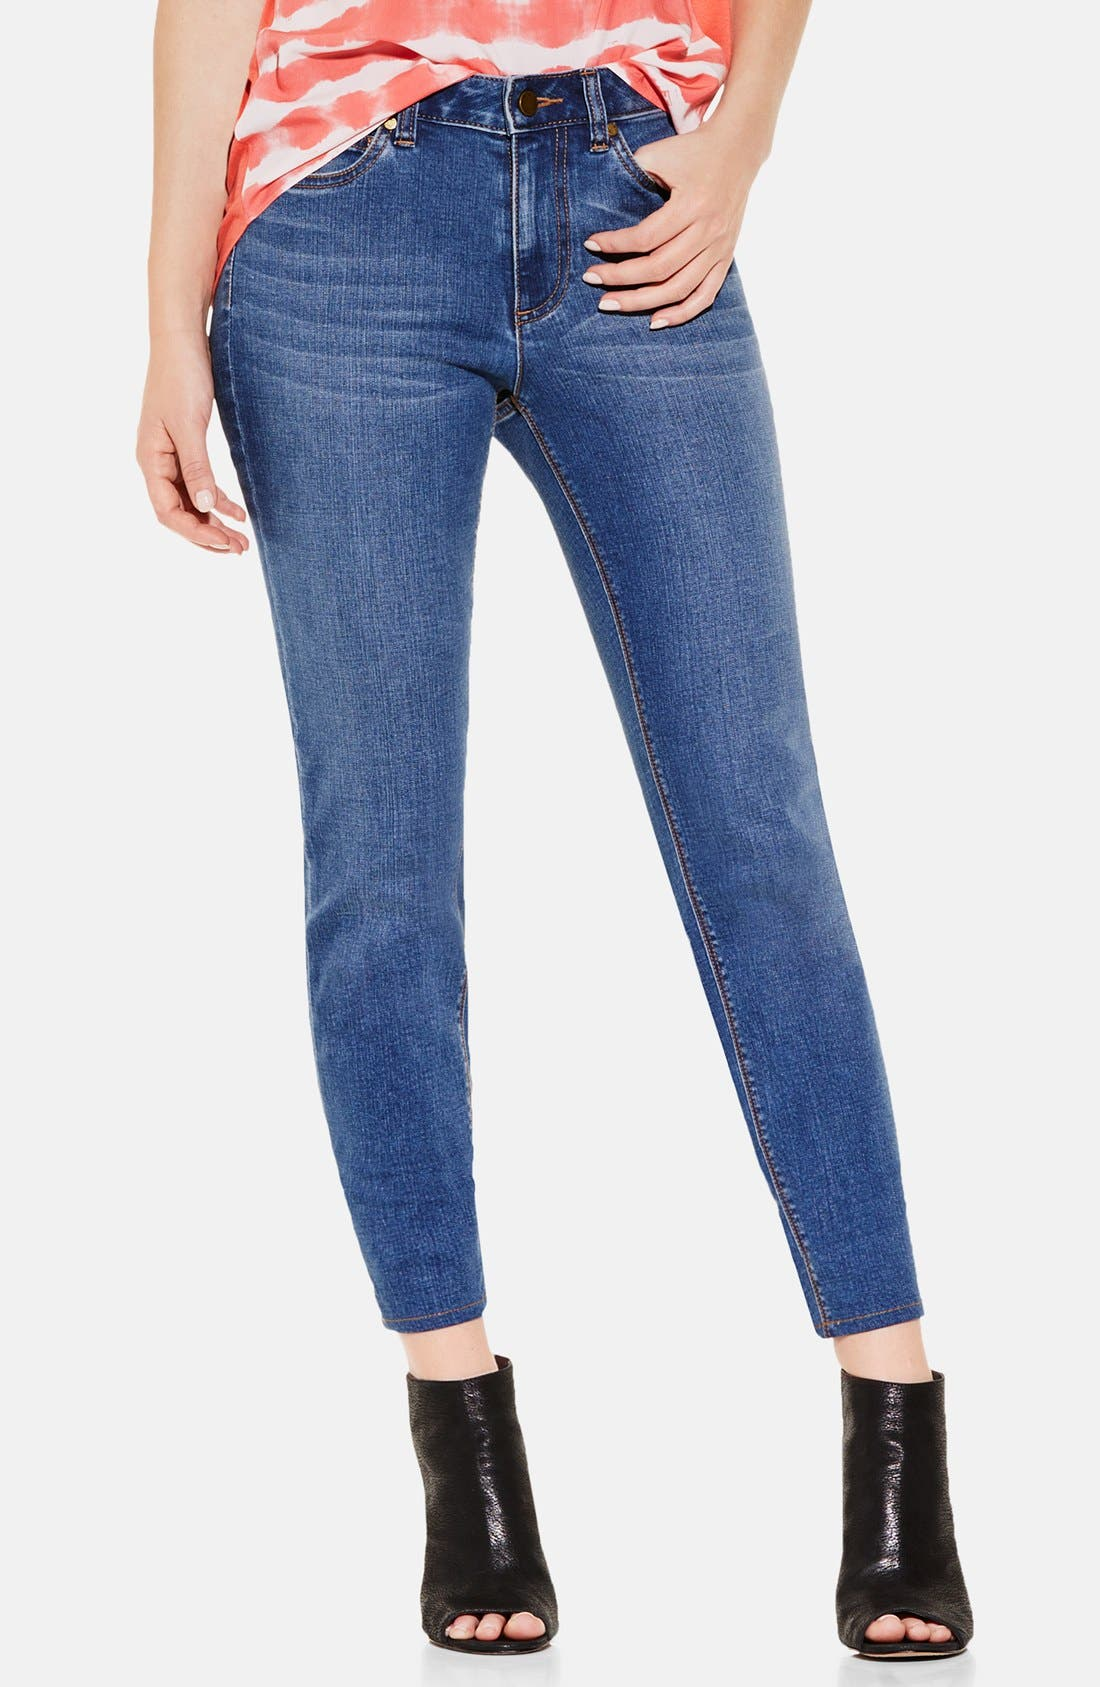 Main Image - Two by Vince Camuto Five-Pocket Stretch Skinny Jeans (Authentic)